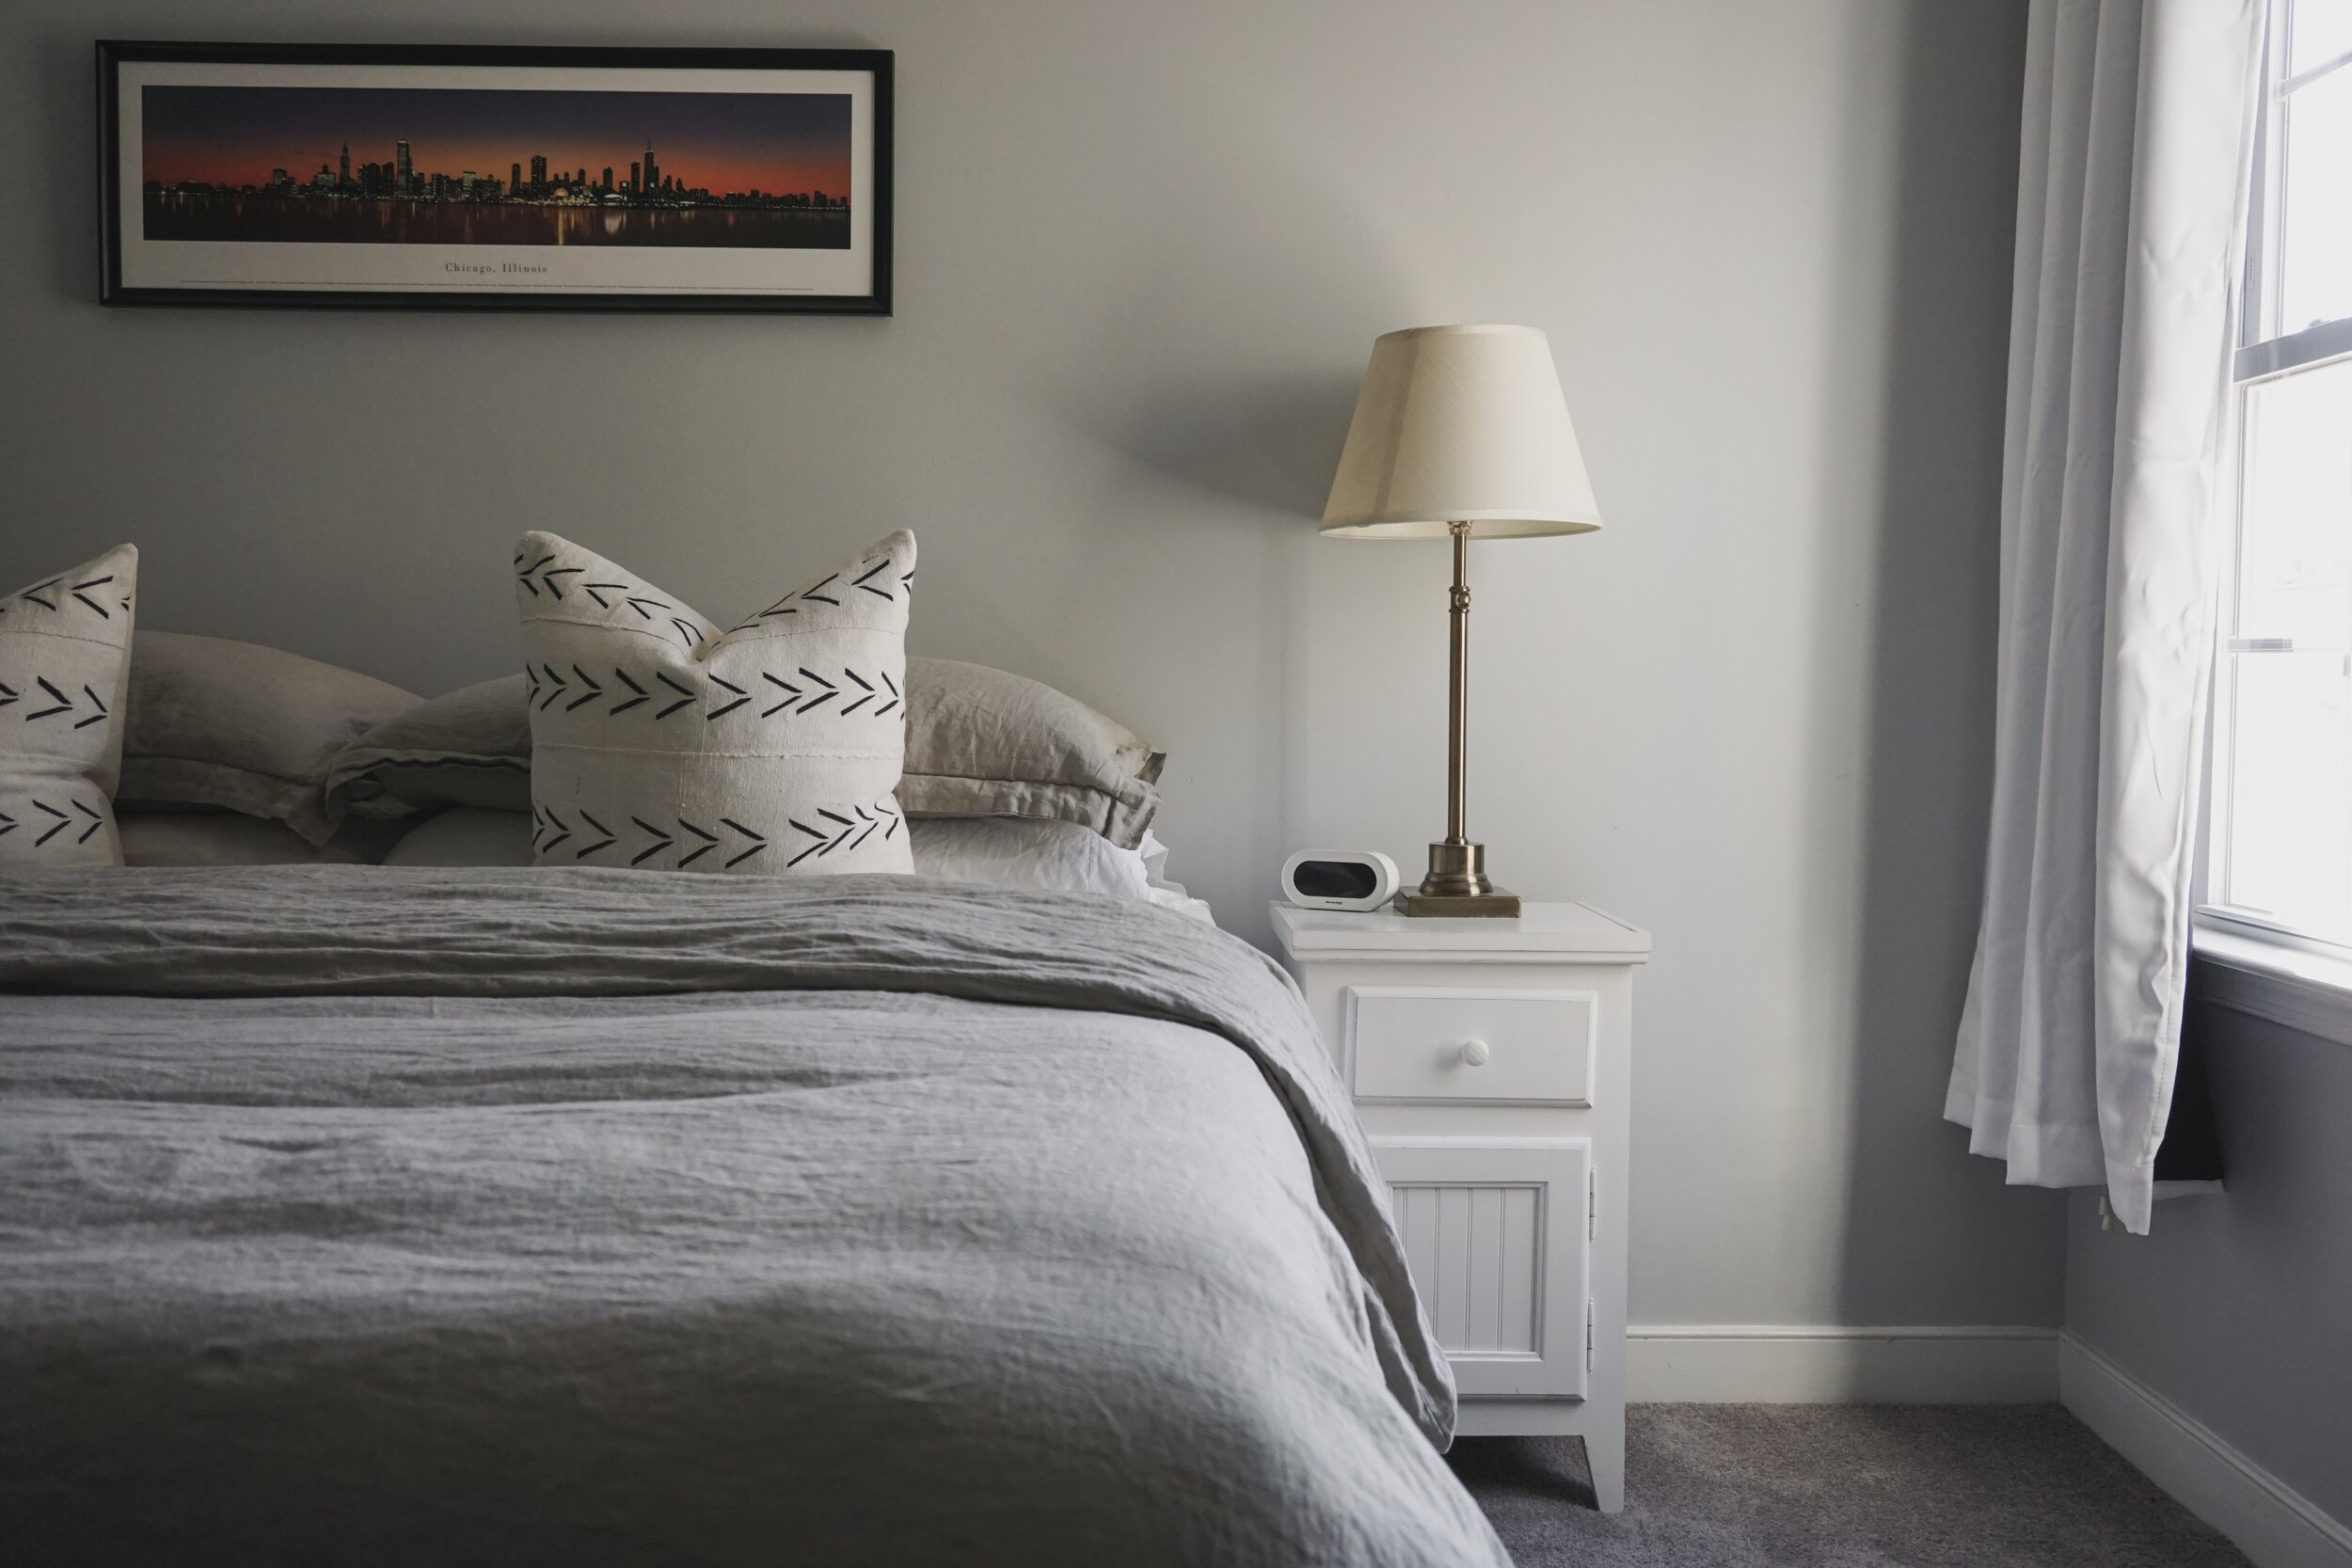 Eventually, I'd like to update the nightstands and art above the bed and add a woven throw.